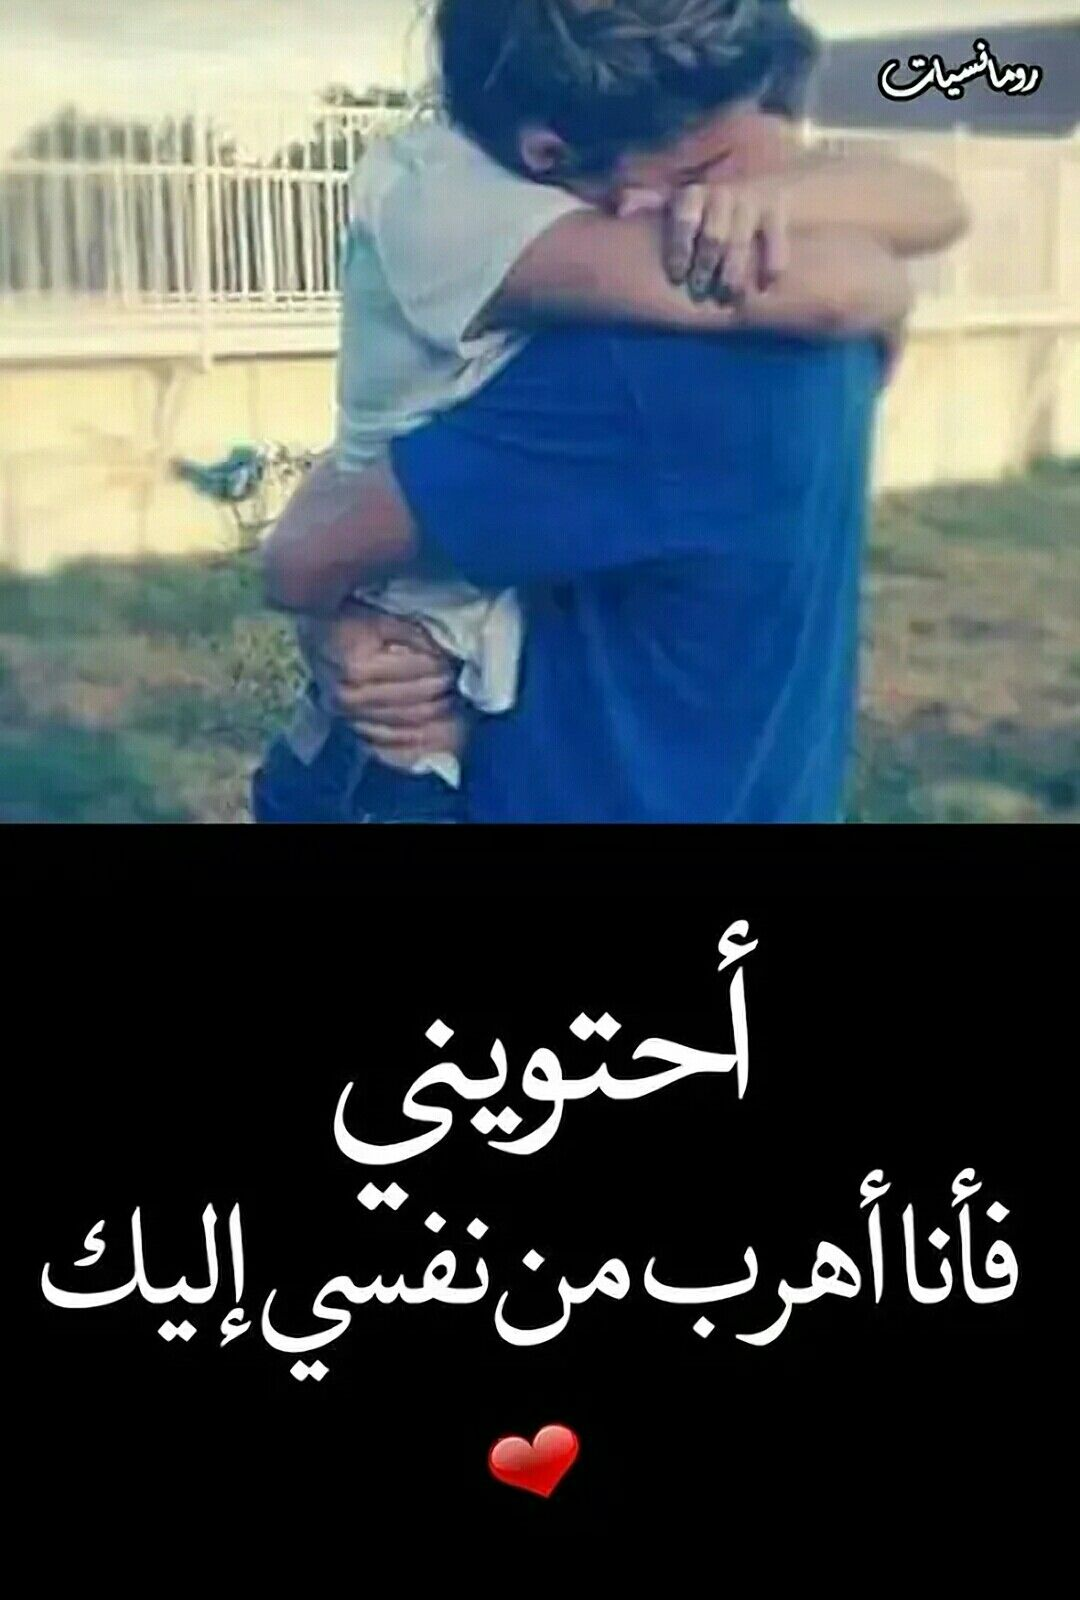 Pin By Nana On ليتها تقرأ Arabic Love Quotes Love Words Love Quotes